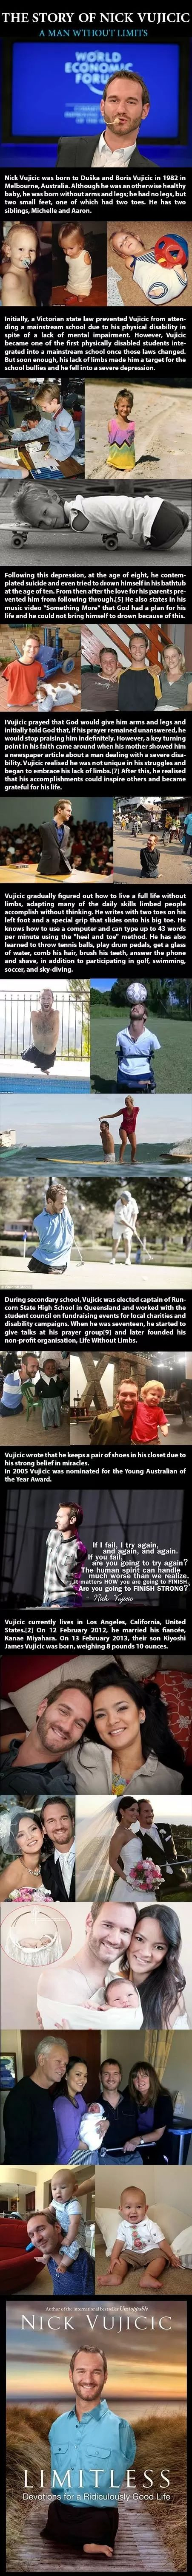 The story of Nick Vujicic achieving everything impossible.